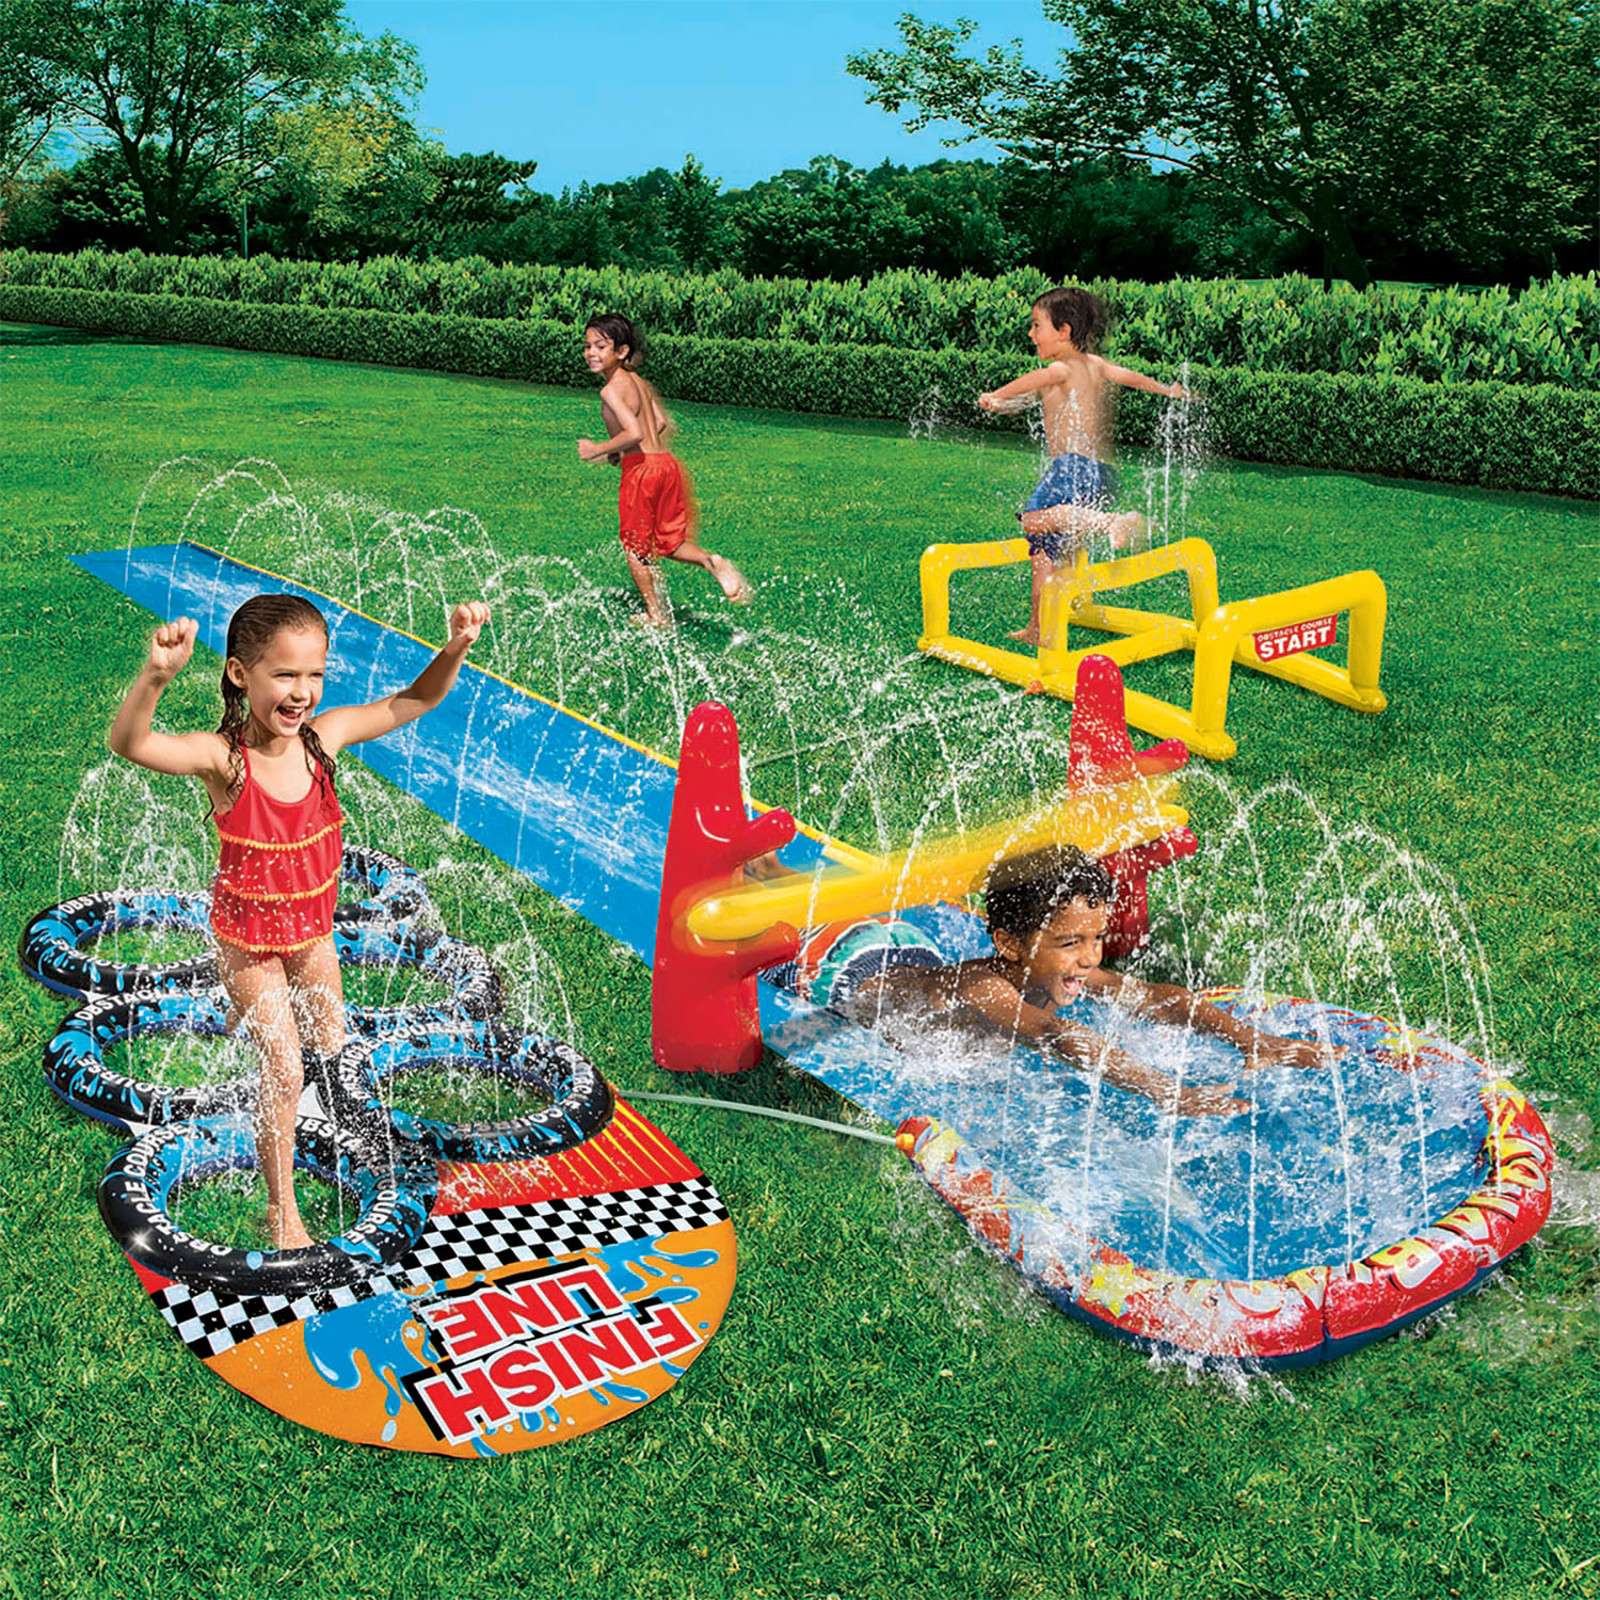 Best ideas about Backyard Water Toy . Save or Pin Banzai 16 Aqua Blast Obstacle Course Slide Toys & Games Now.